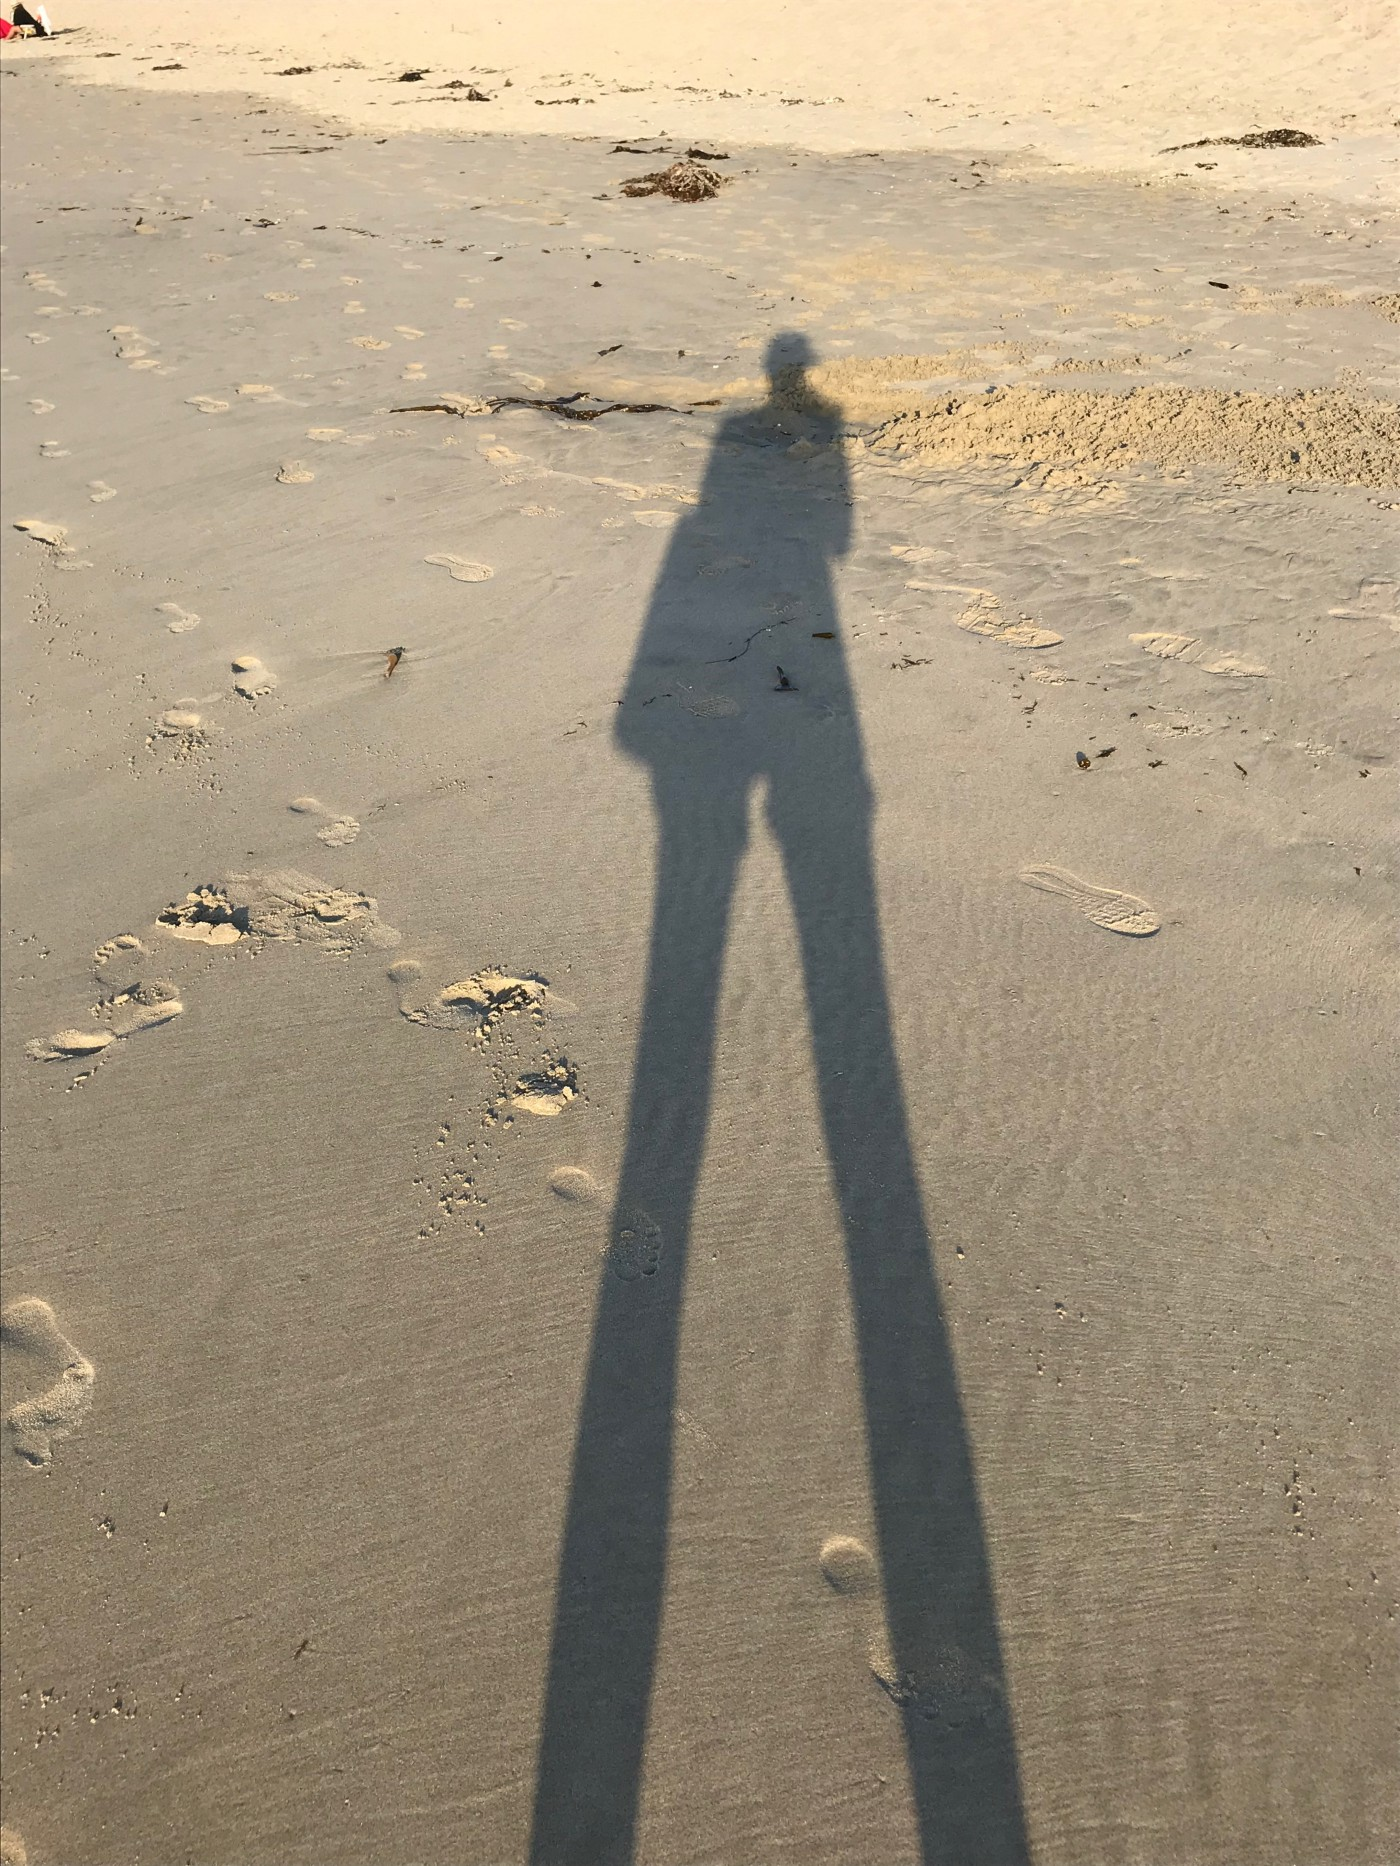 Shadow of figure on beach